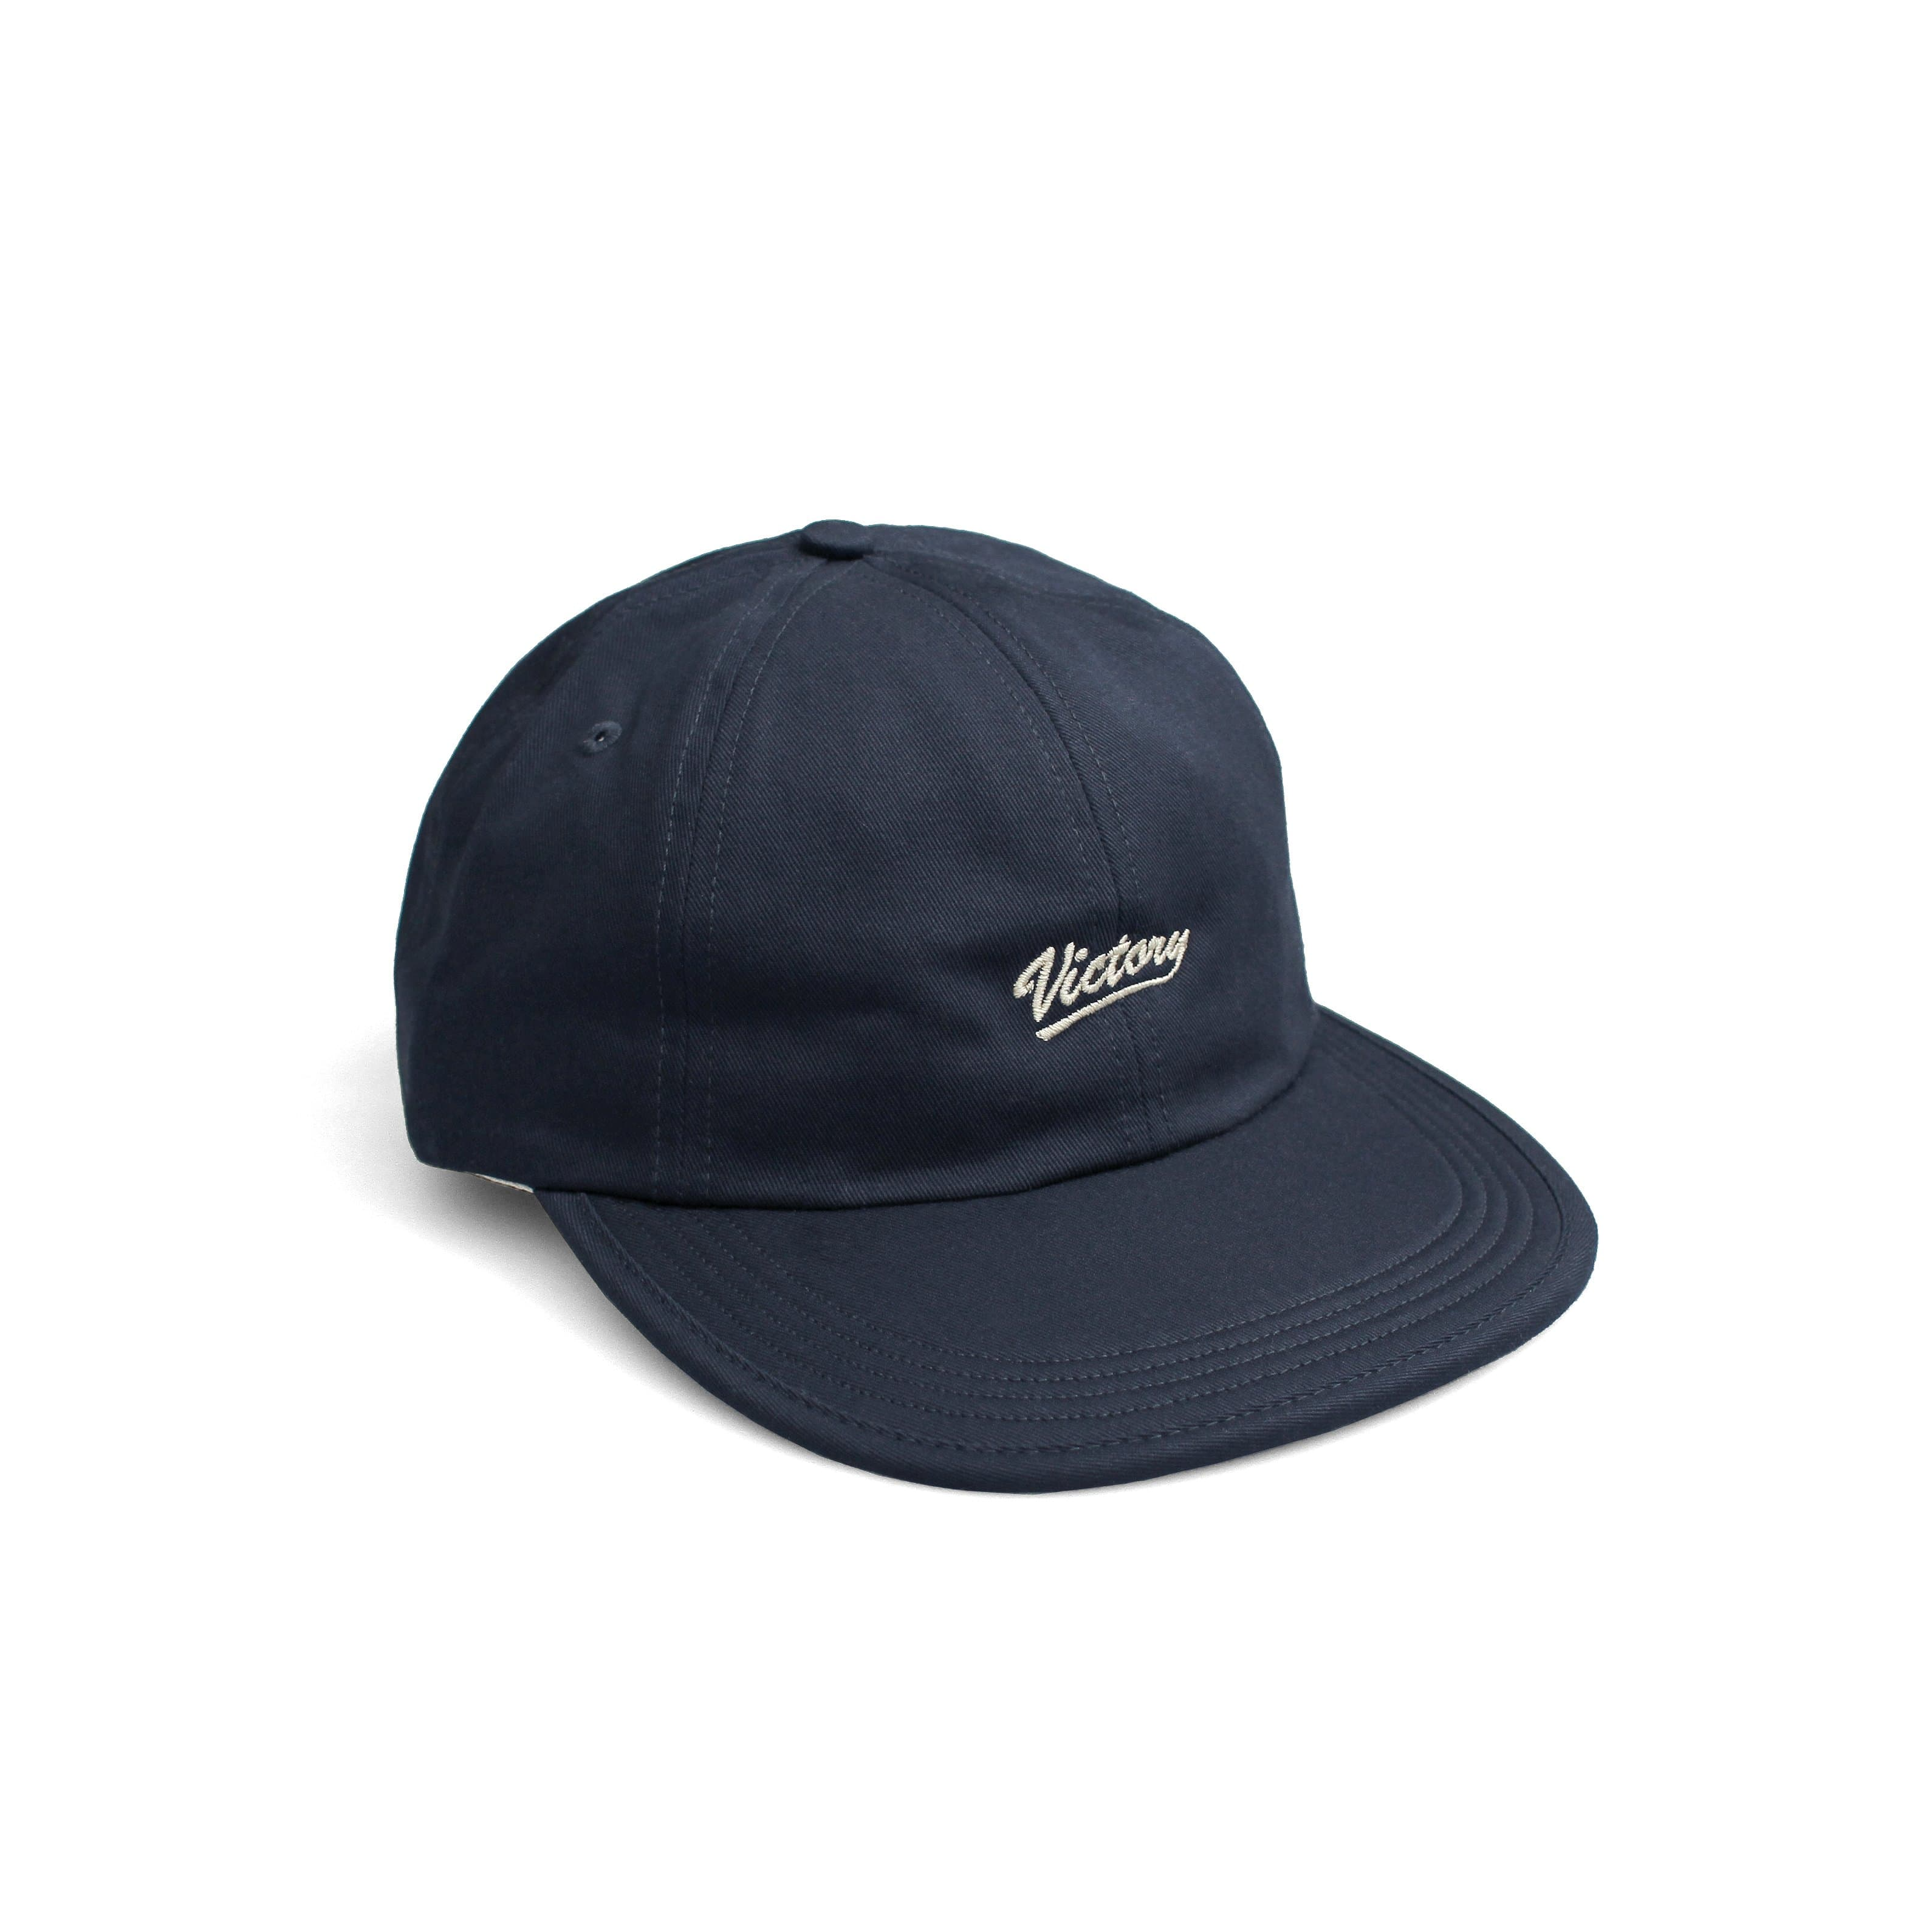 PLAYER FORMLESS POLO CAP - NAVY